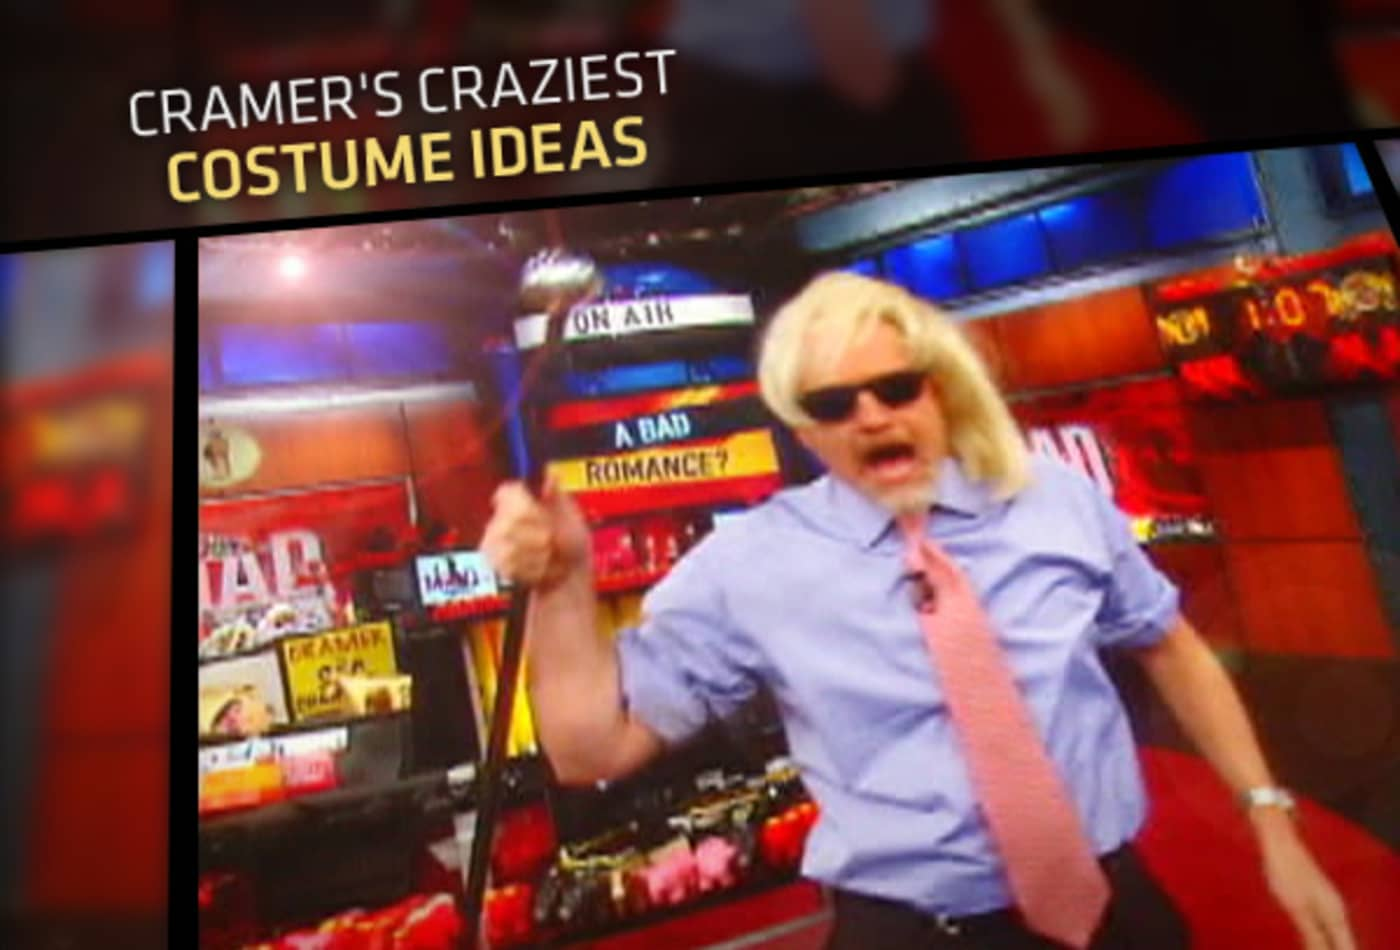 Lady-Gaga-Craziest-Costume-Ideas-Jim-Cramer-Cover.jpg